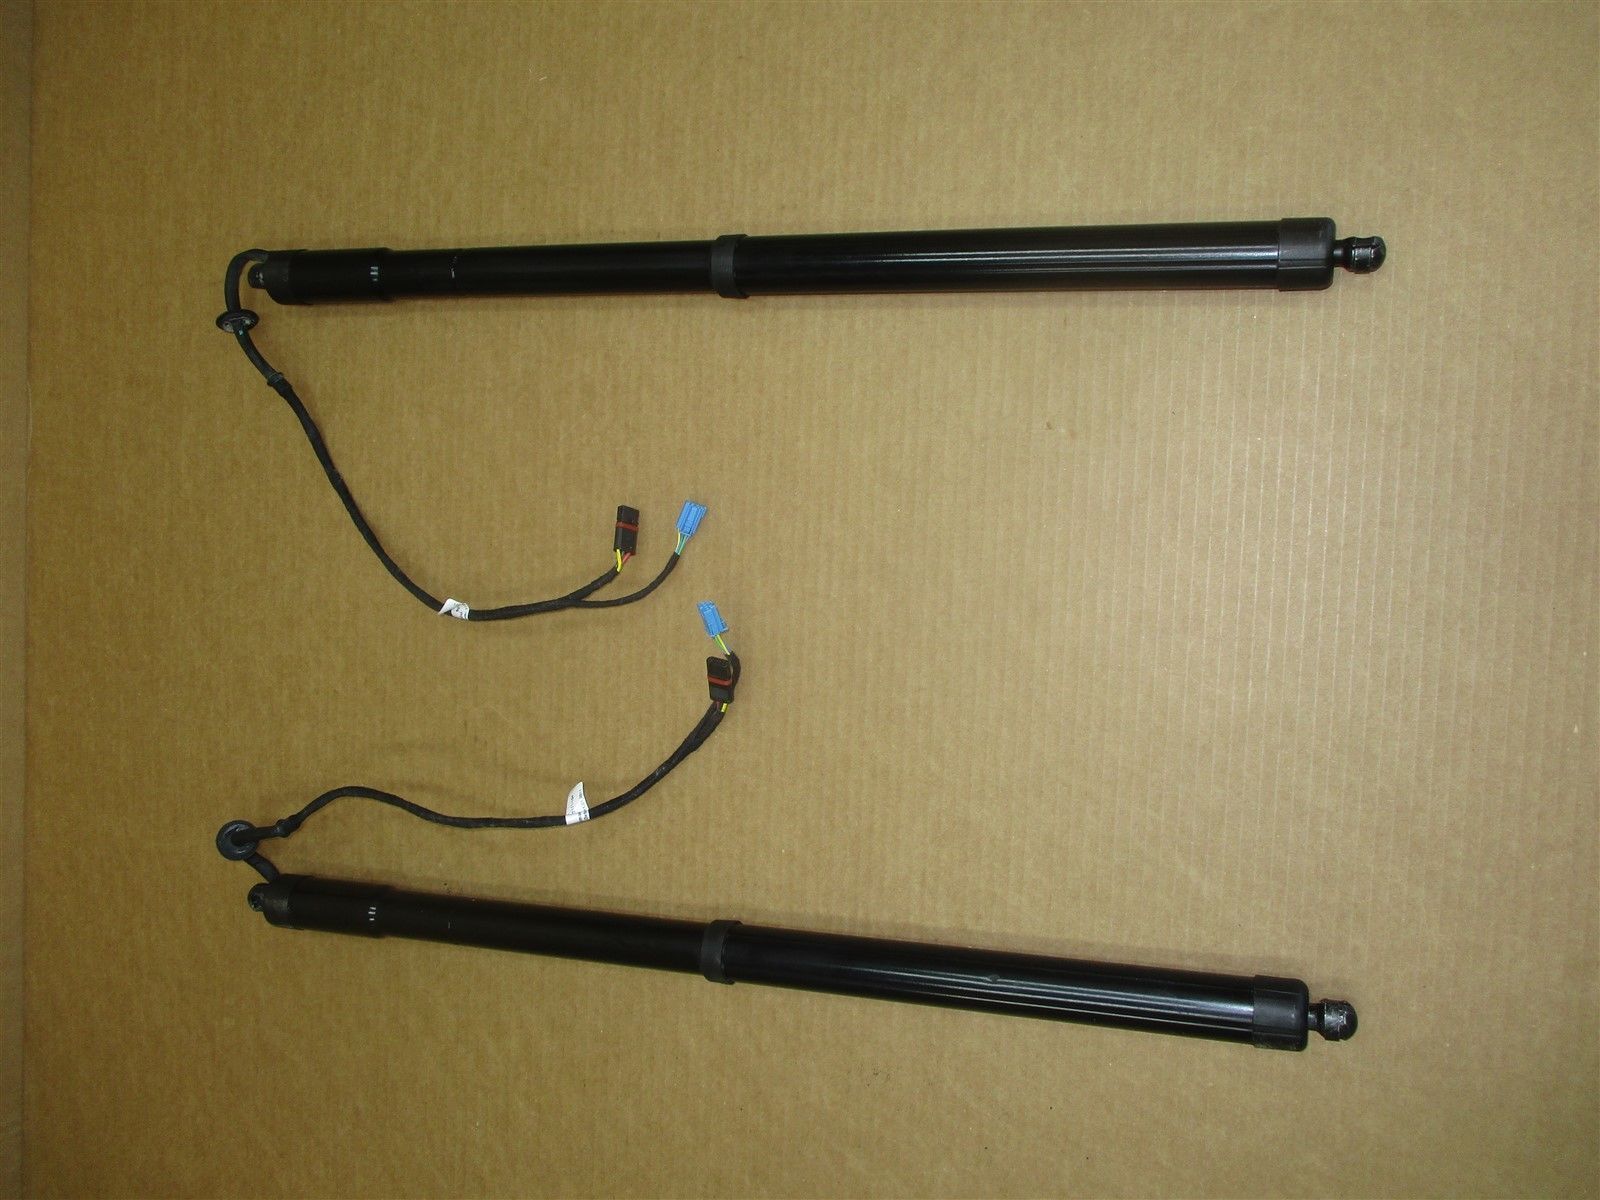 11 Panamera AWD 970 Porsche L R REAR GAS SPRINGS 927111-104 LEFT RIGHT 84,260